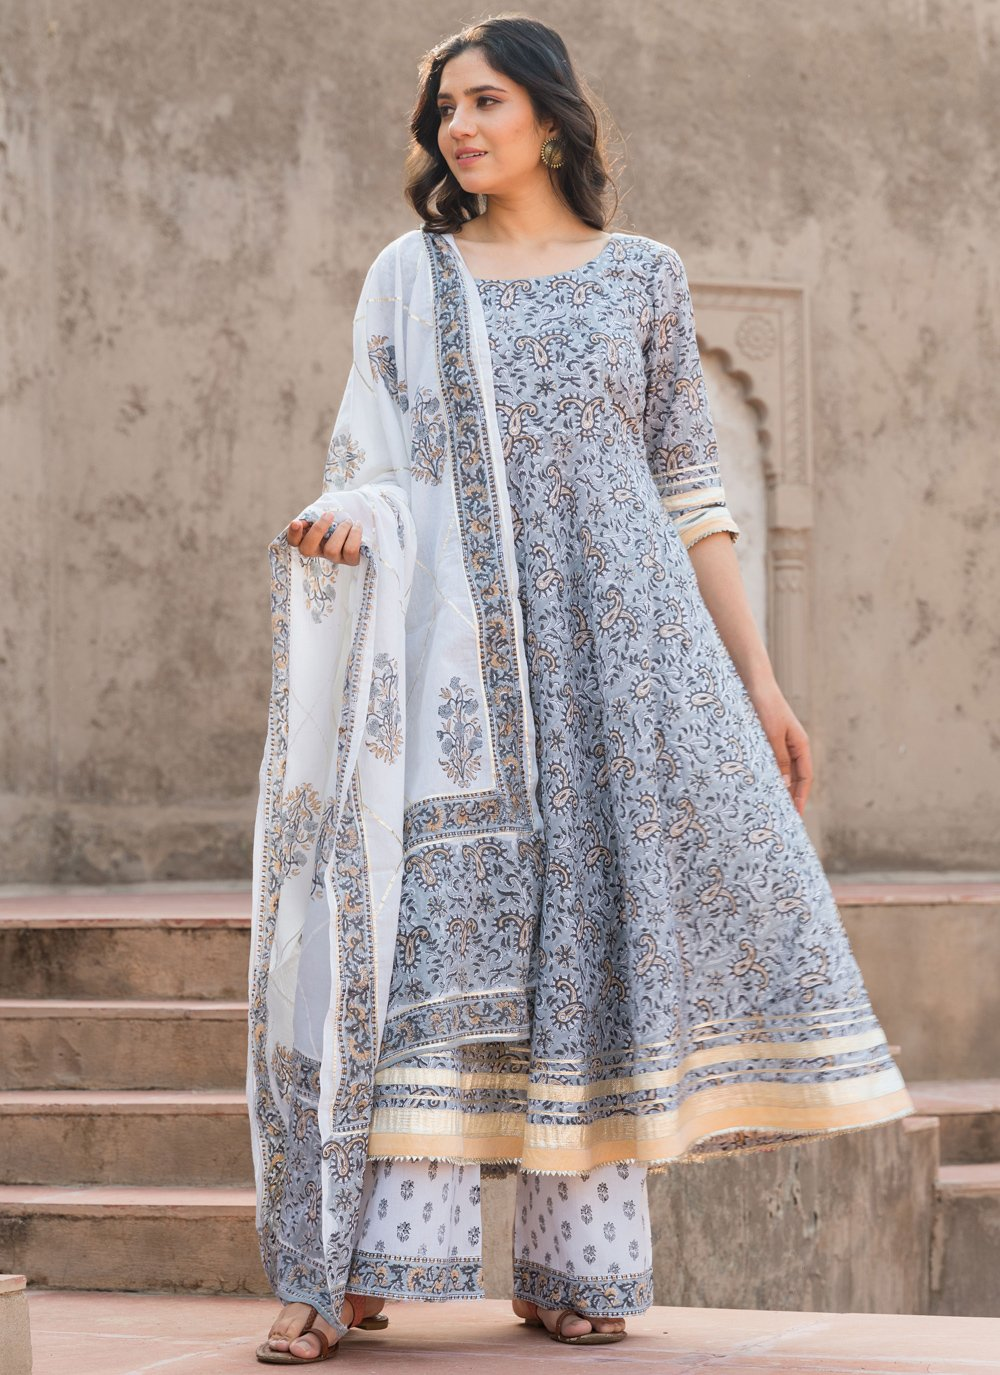 Cotton Printed Bollywood Salwar Kameez